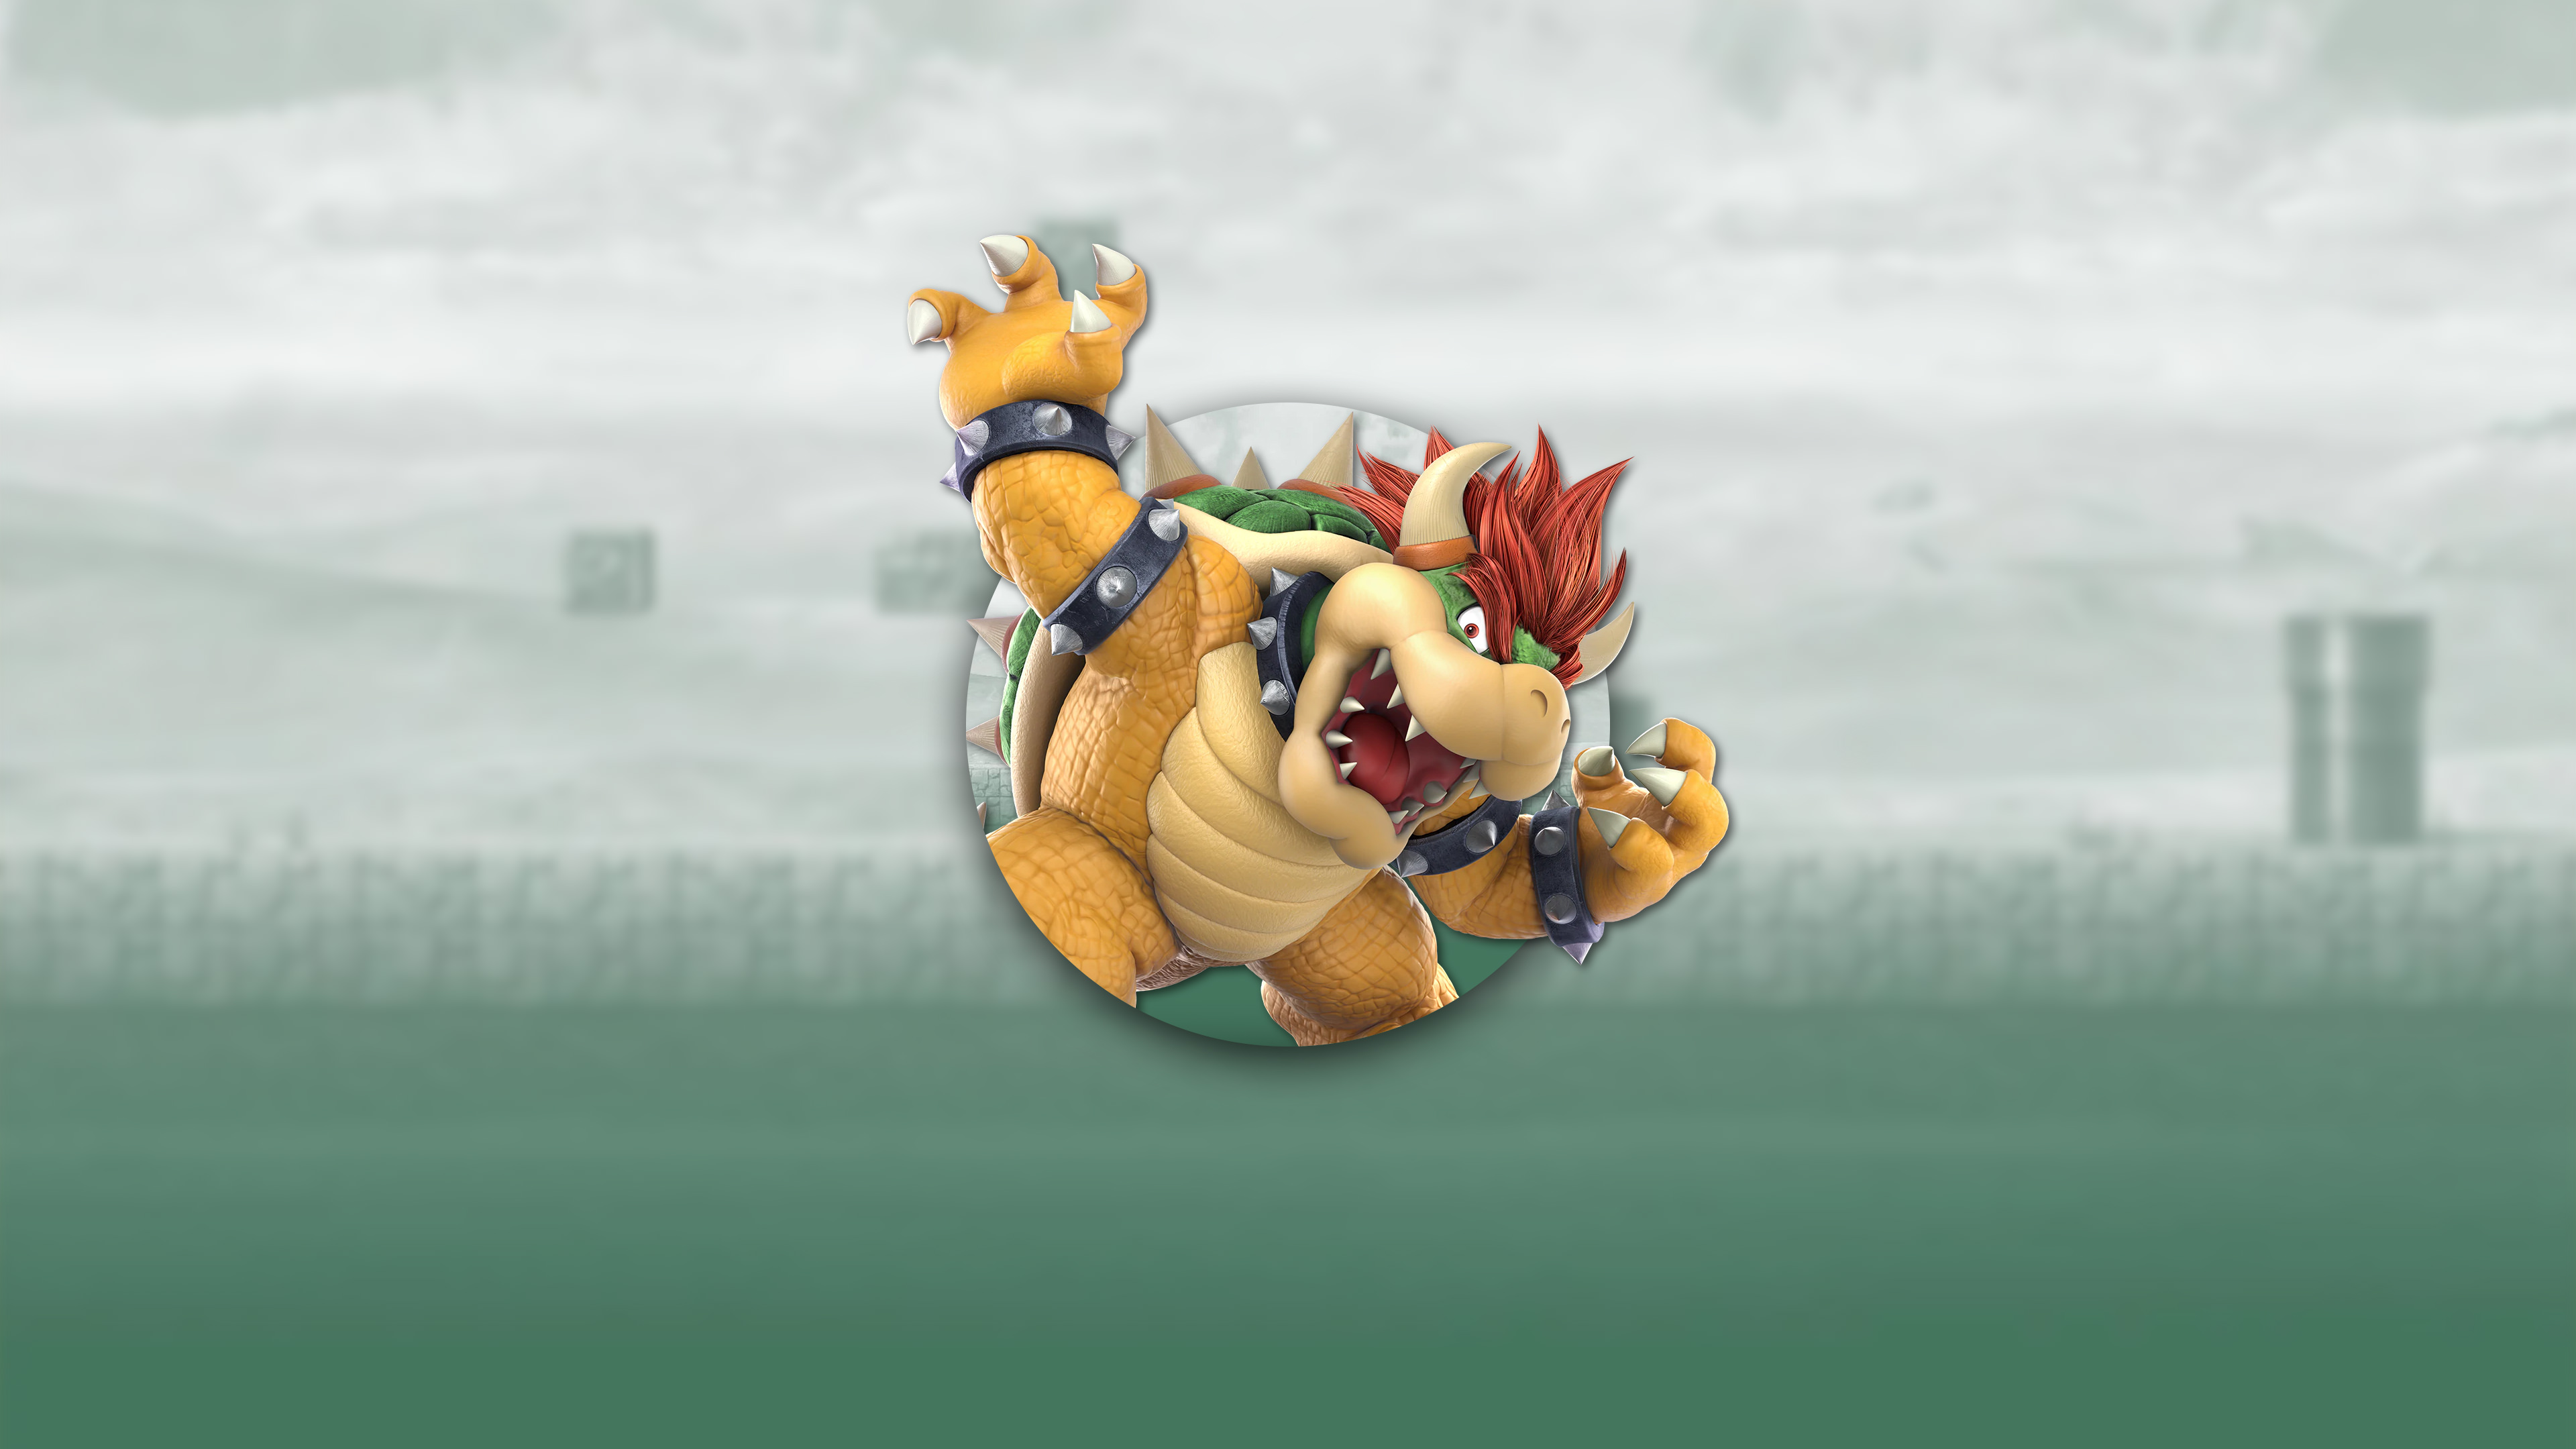 super smash bros ultimate bowser uhd 4k wallpaper